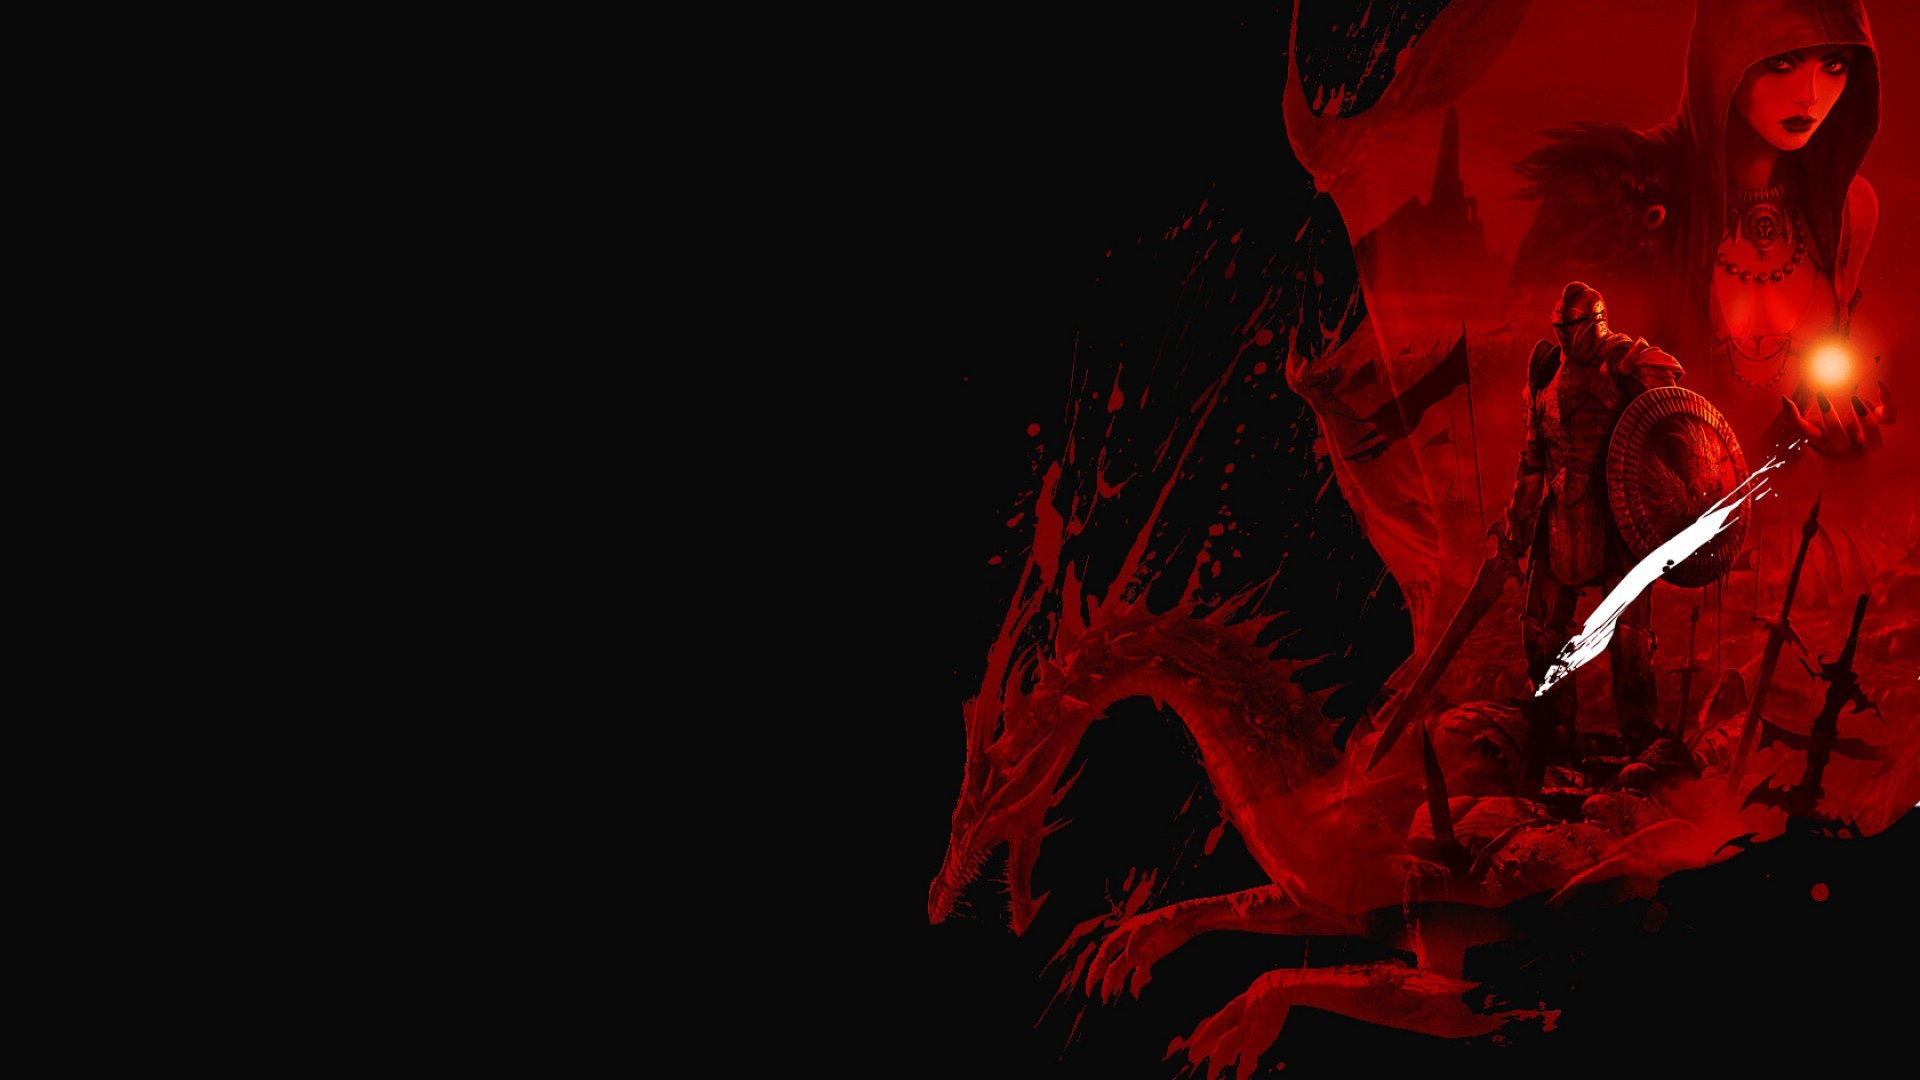 Black and red wallpaper 1920x1080 75 images - Black screensaver ...